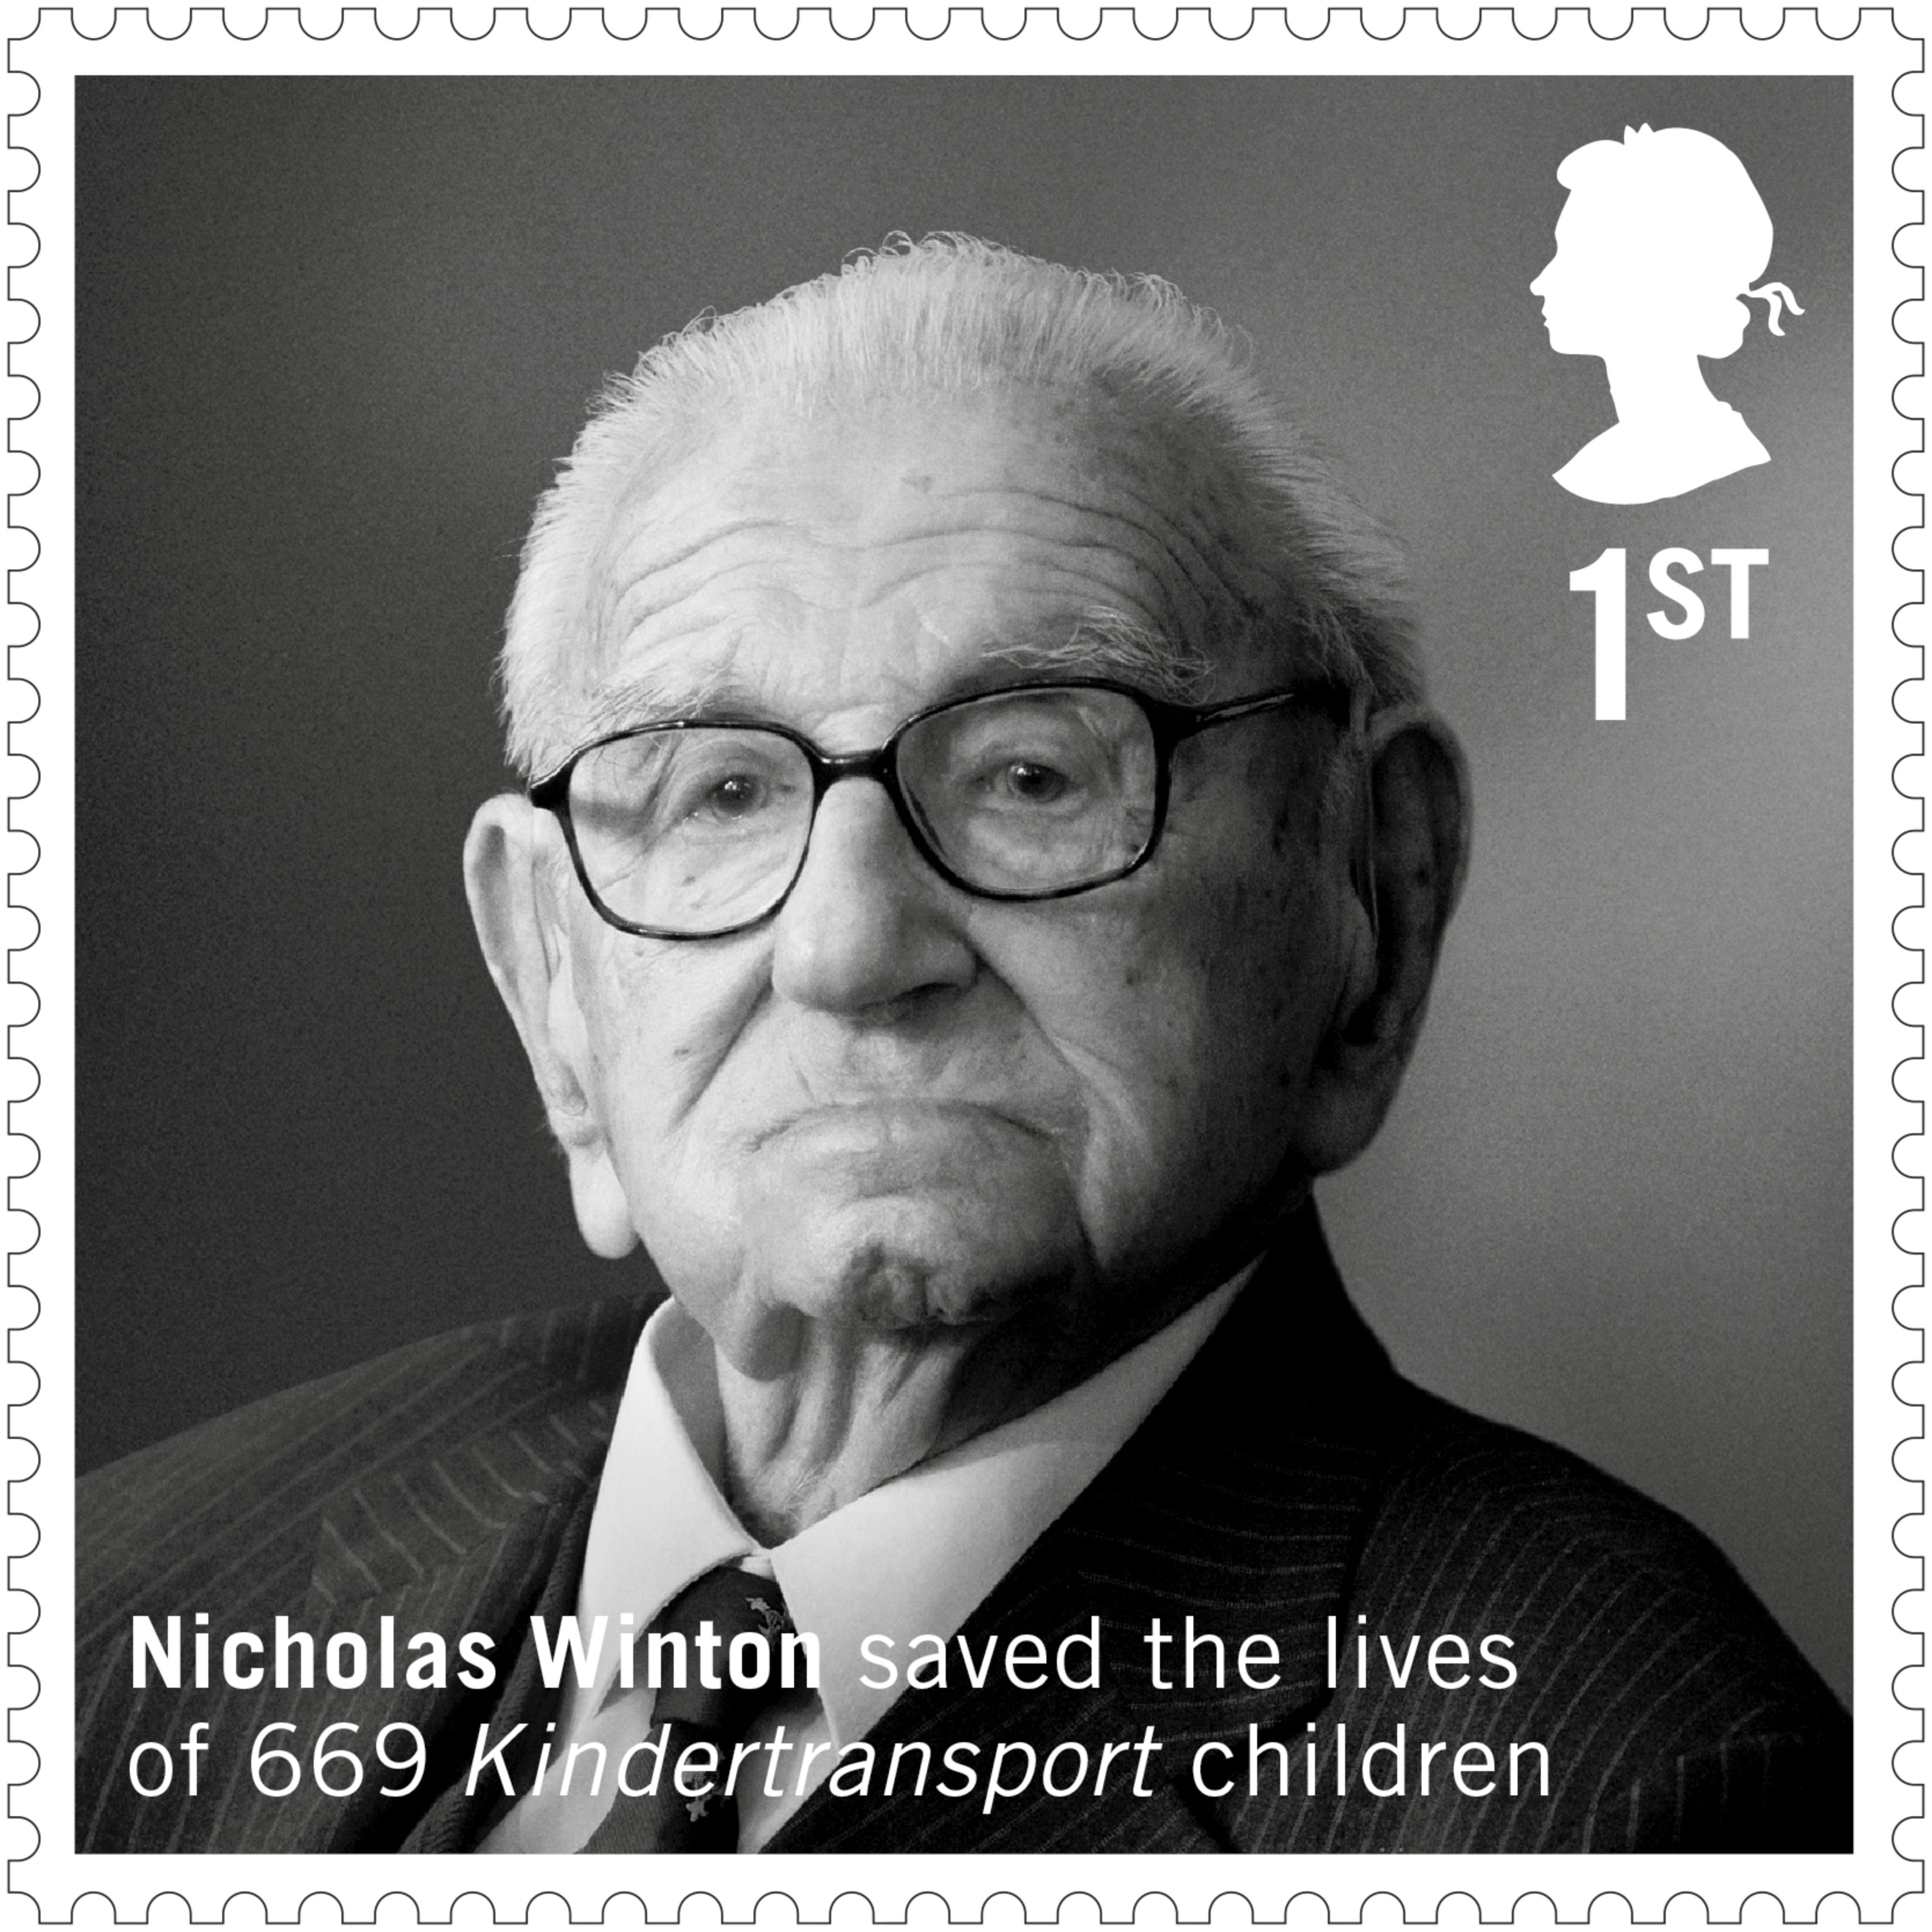 The Royal Mail's Sir Nicholas Winton's stamp – issued following a Jewish News campaign backed by 106,000 people.